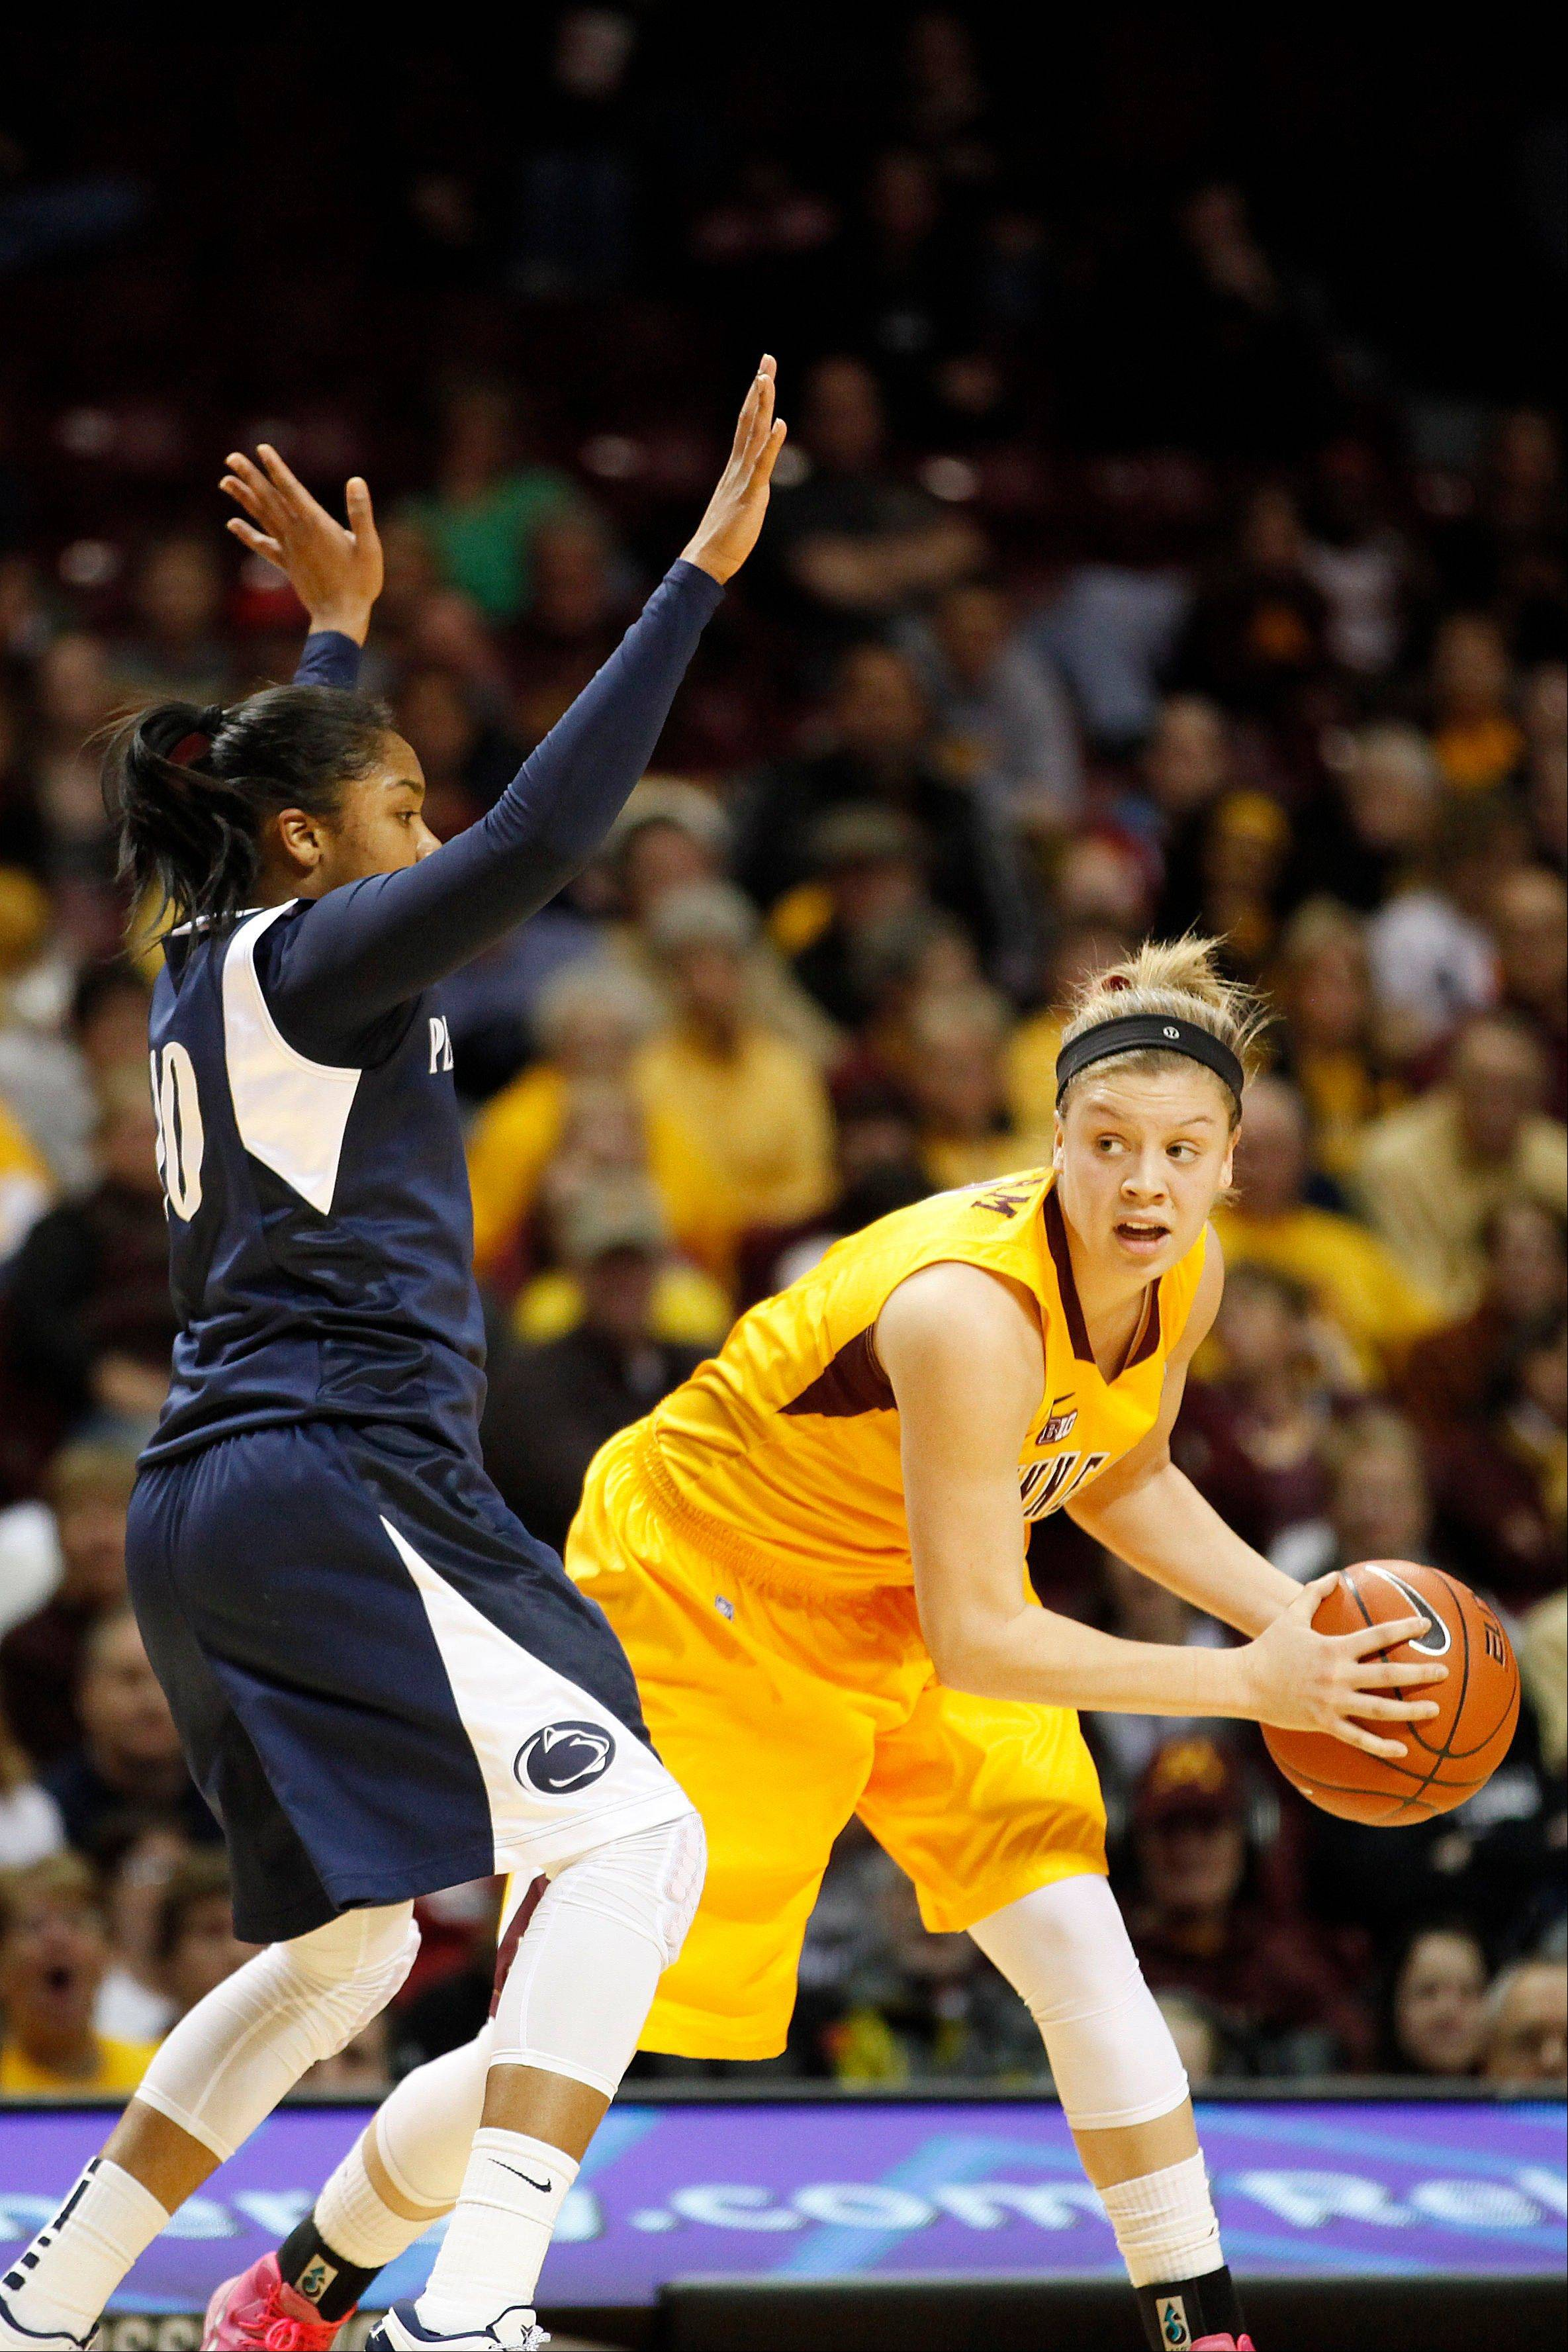 Minnesota guard Rachel Banham, right, looks to make a pass against Penn State guard Alex Bentley (20) in the first half of an NCAA college basketball game on Thursday, Feb. 28, 2013, in Minneapolis.